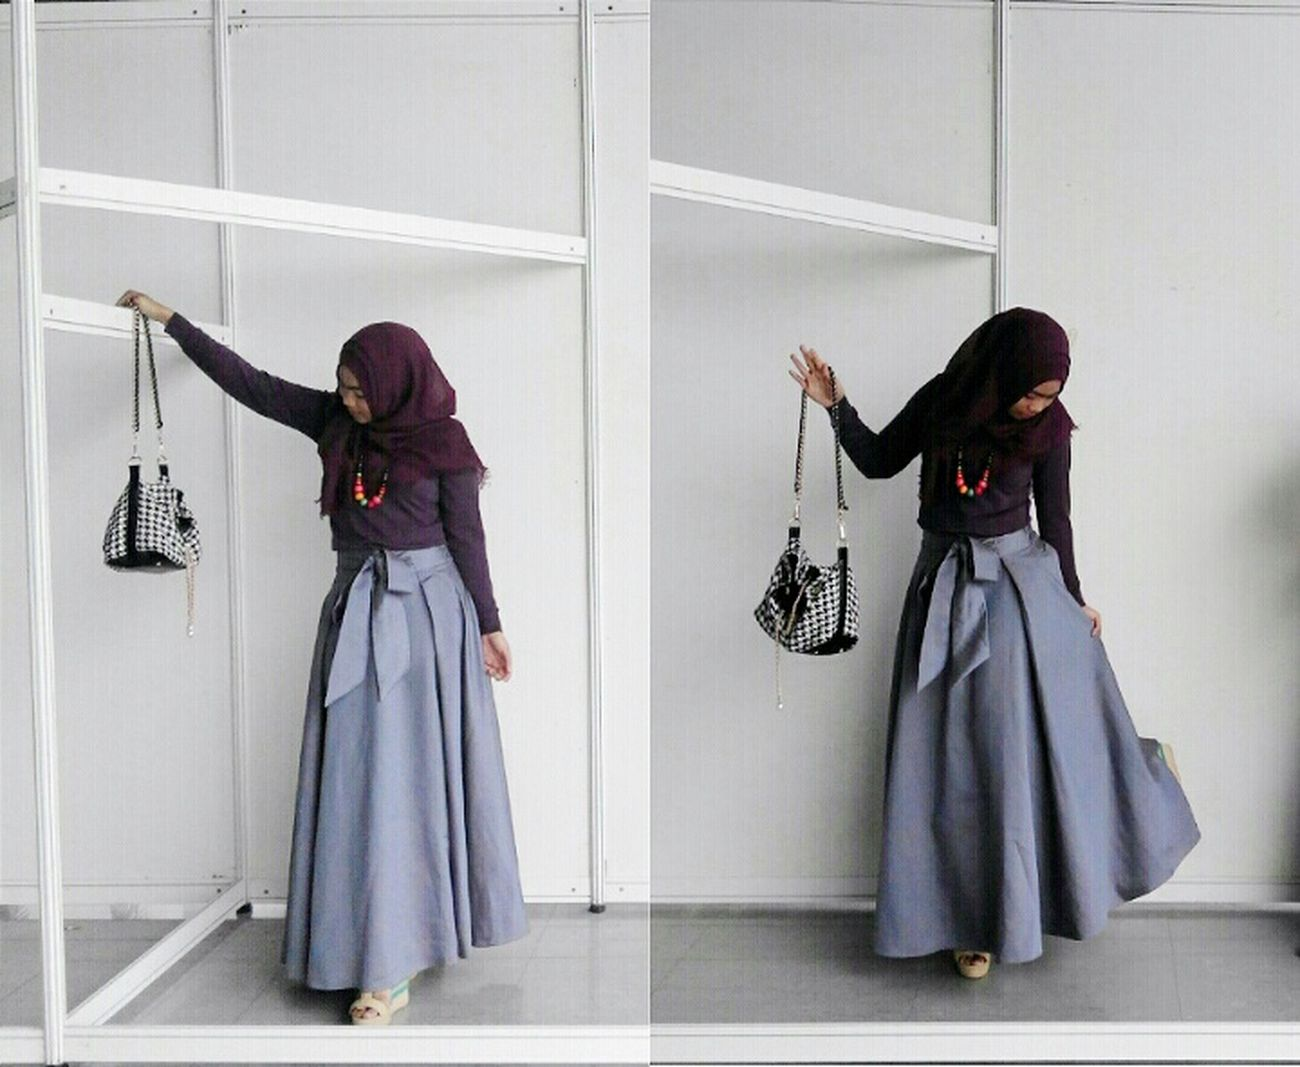 Mannequin Purple Looks Like Mannequin Street Fashion Street Photography Happy People Islam Hijabstyle  Muslimgirl Muslimahfashion